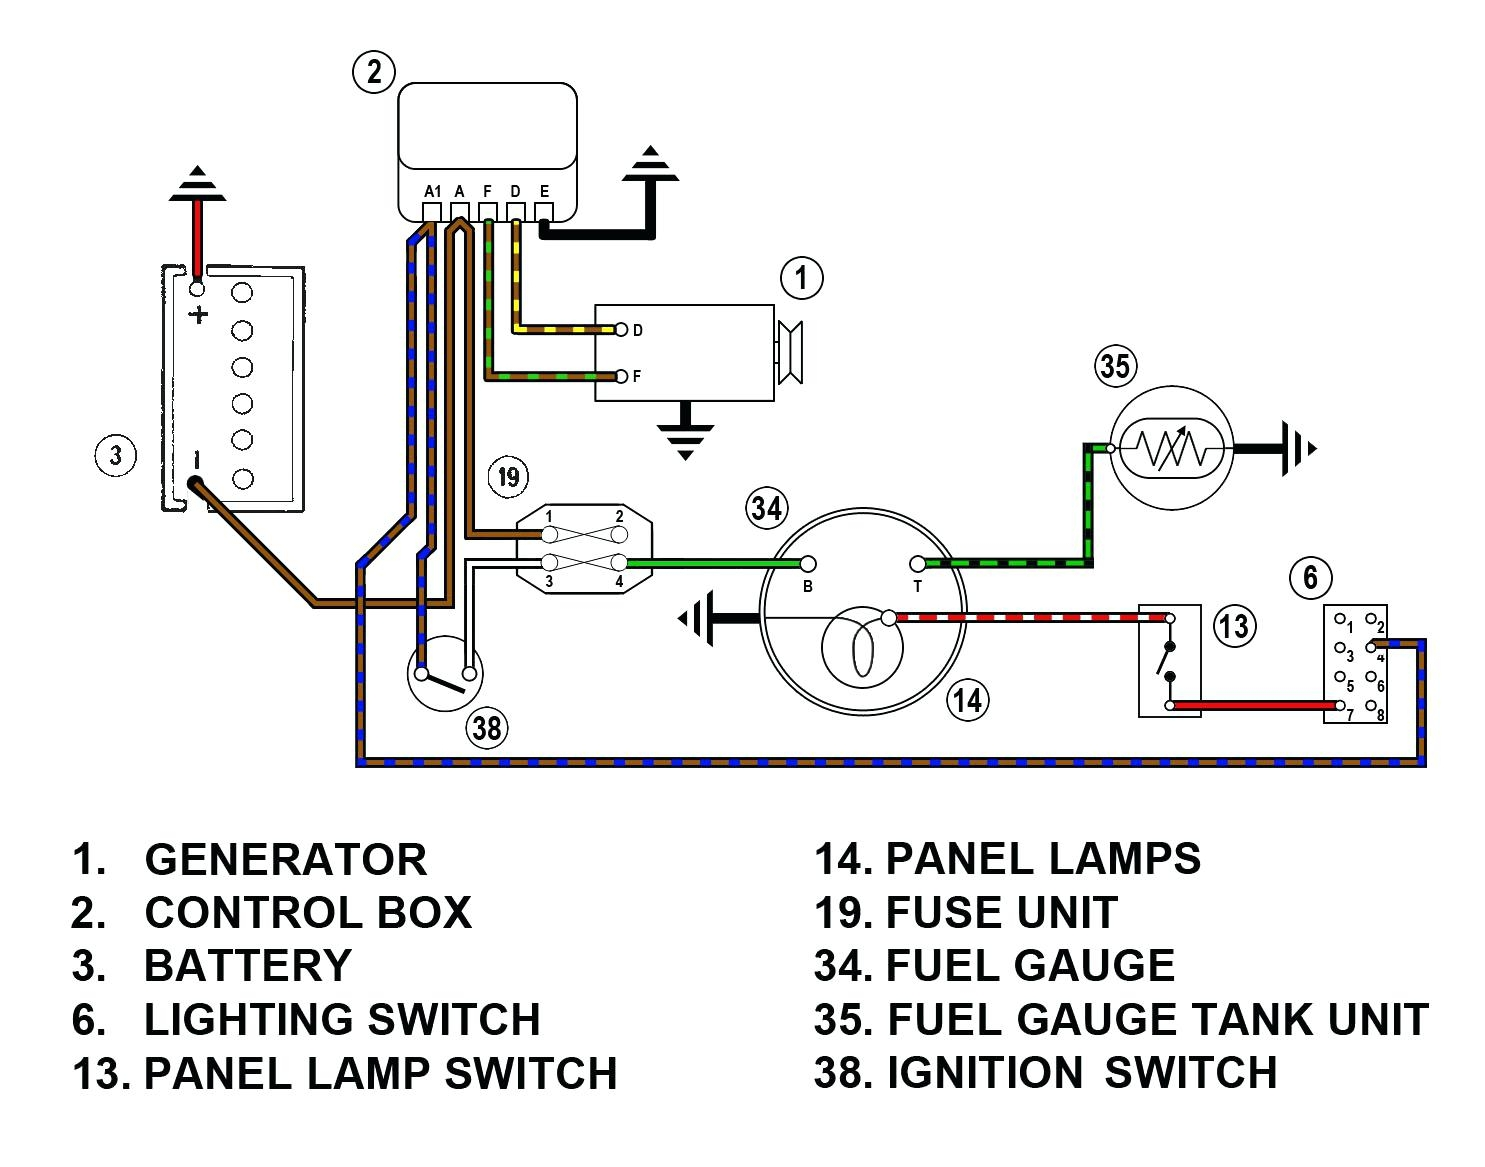 axxess tyto 01 wiring diagram Collection-Harley Fuel Gauge Wiring Diagram Gallery Axxess Tyto 01 Wiring Diagram Image 13-o